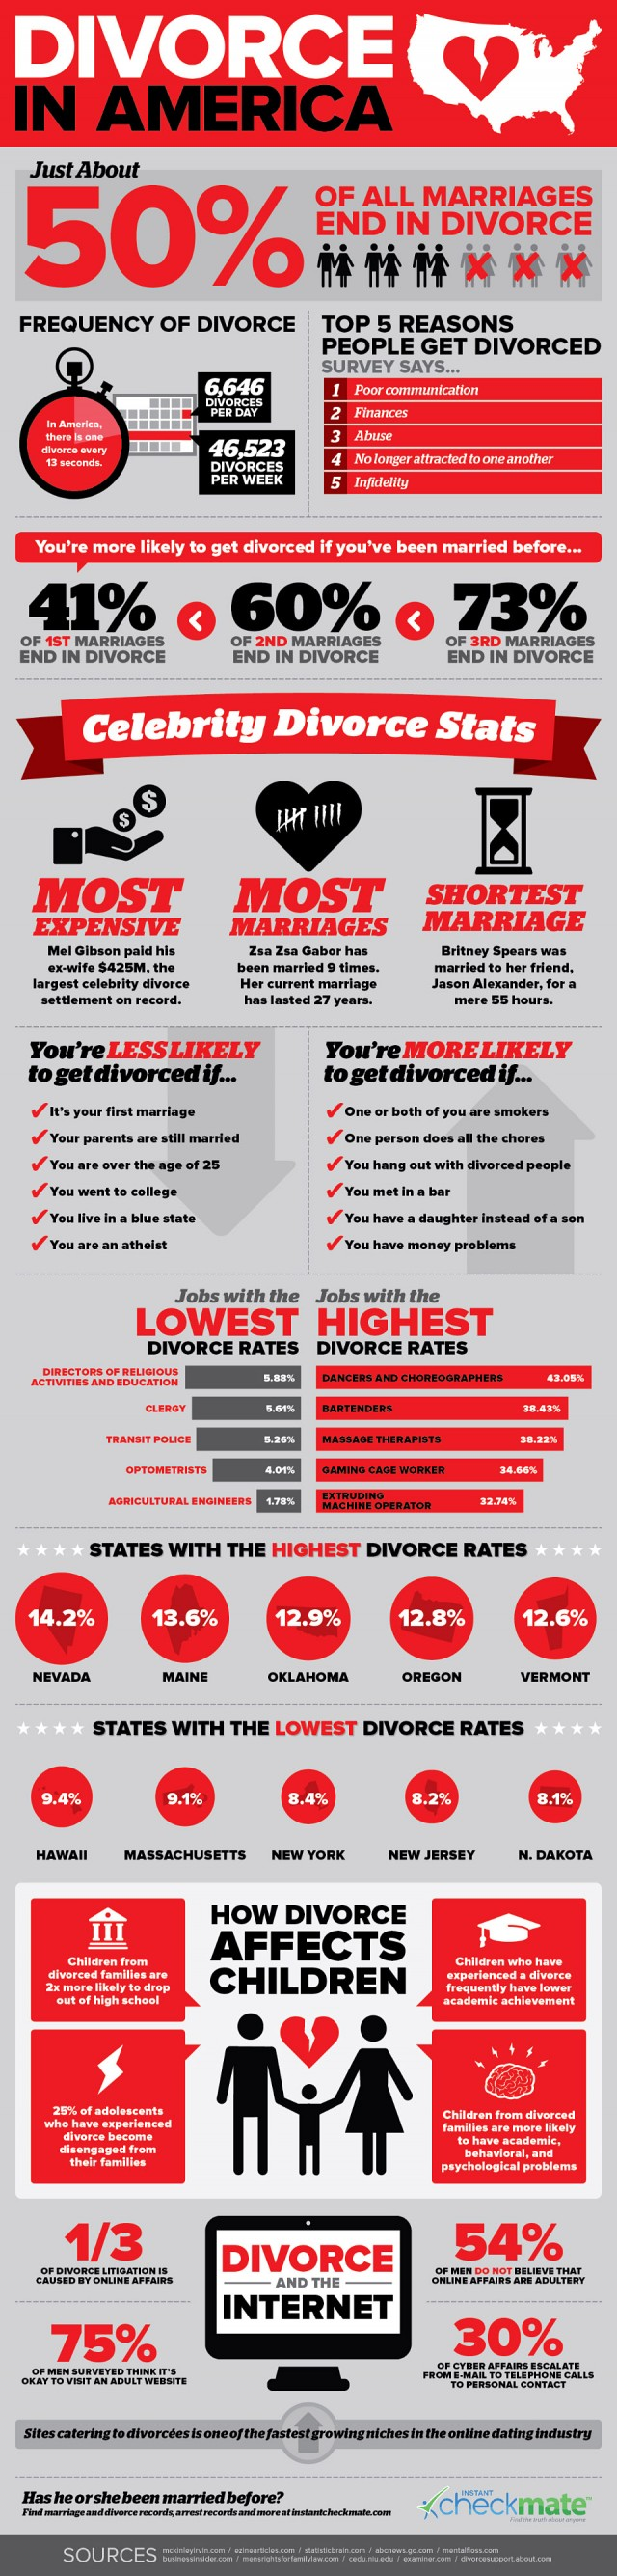 Divorce Facts and Statistics